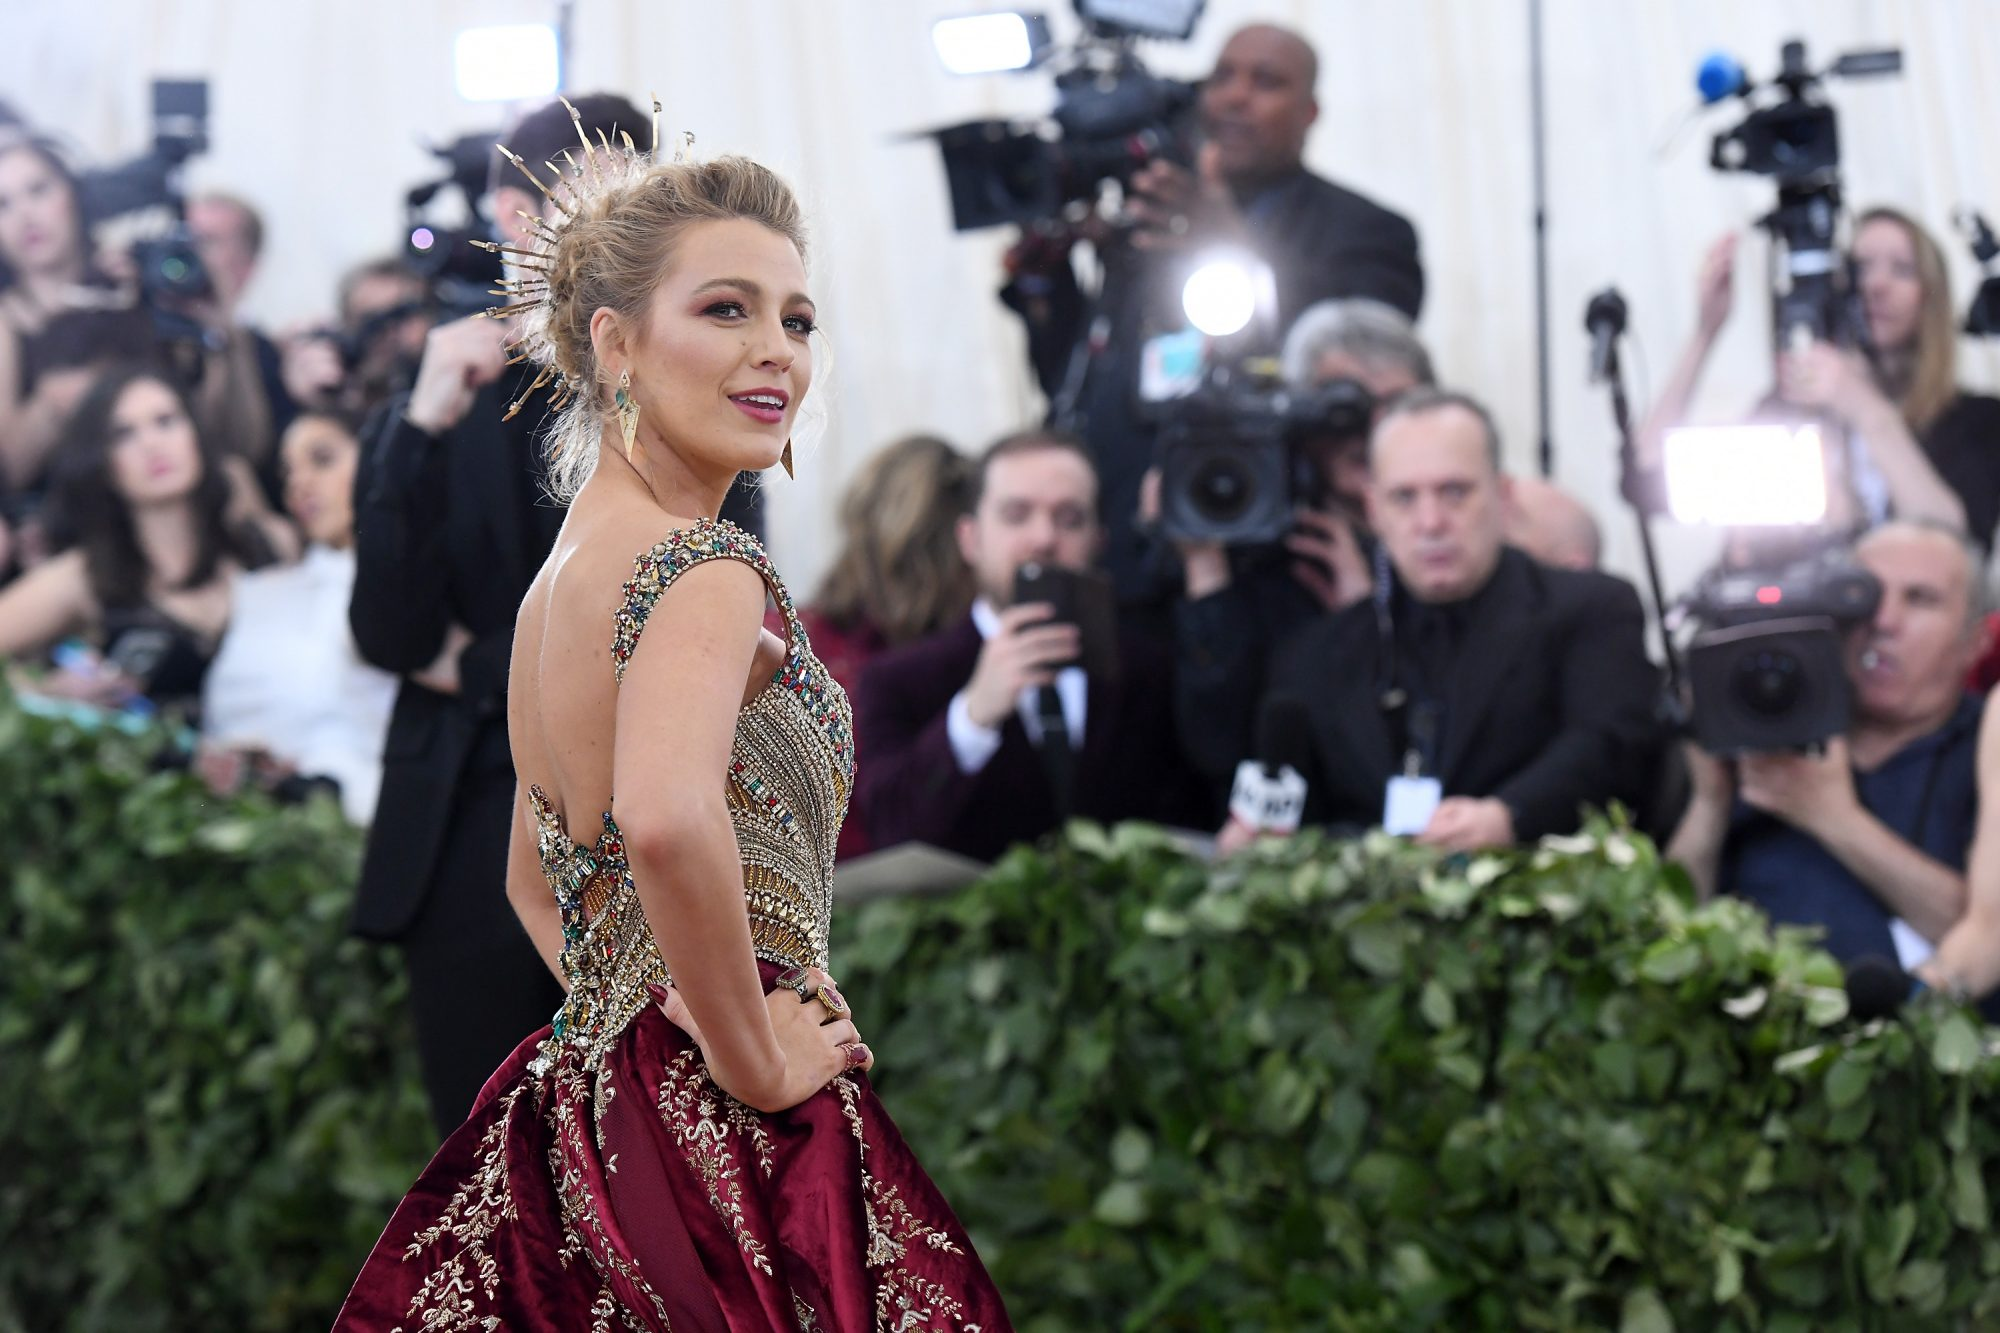 Why Wasn't Blake Lively at the Met Gala?